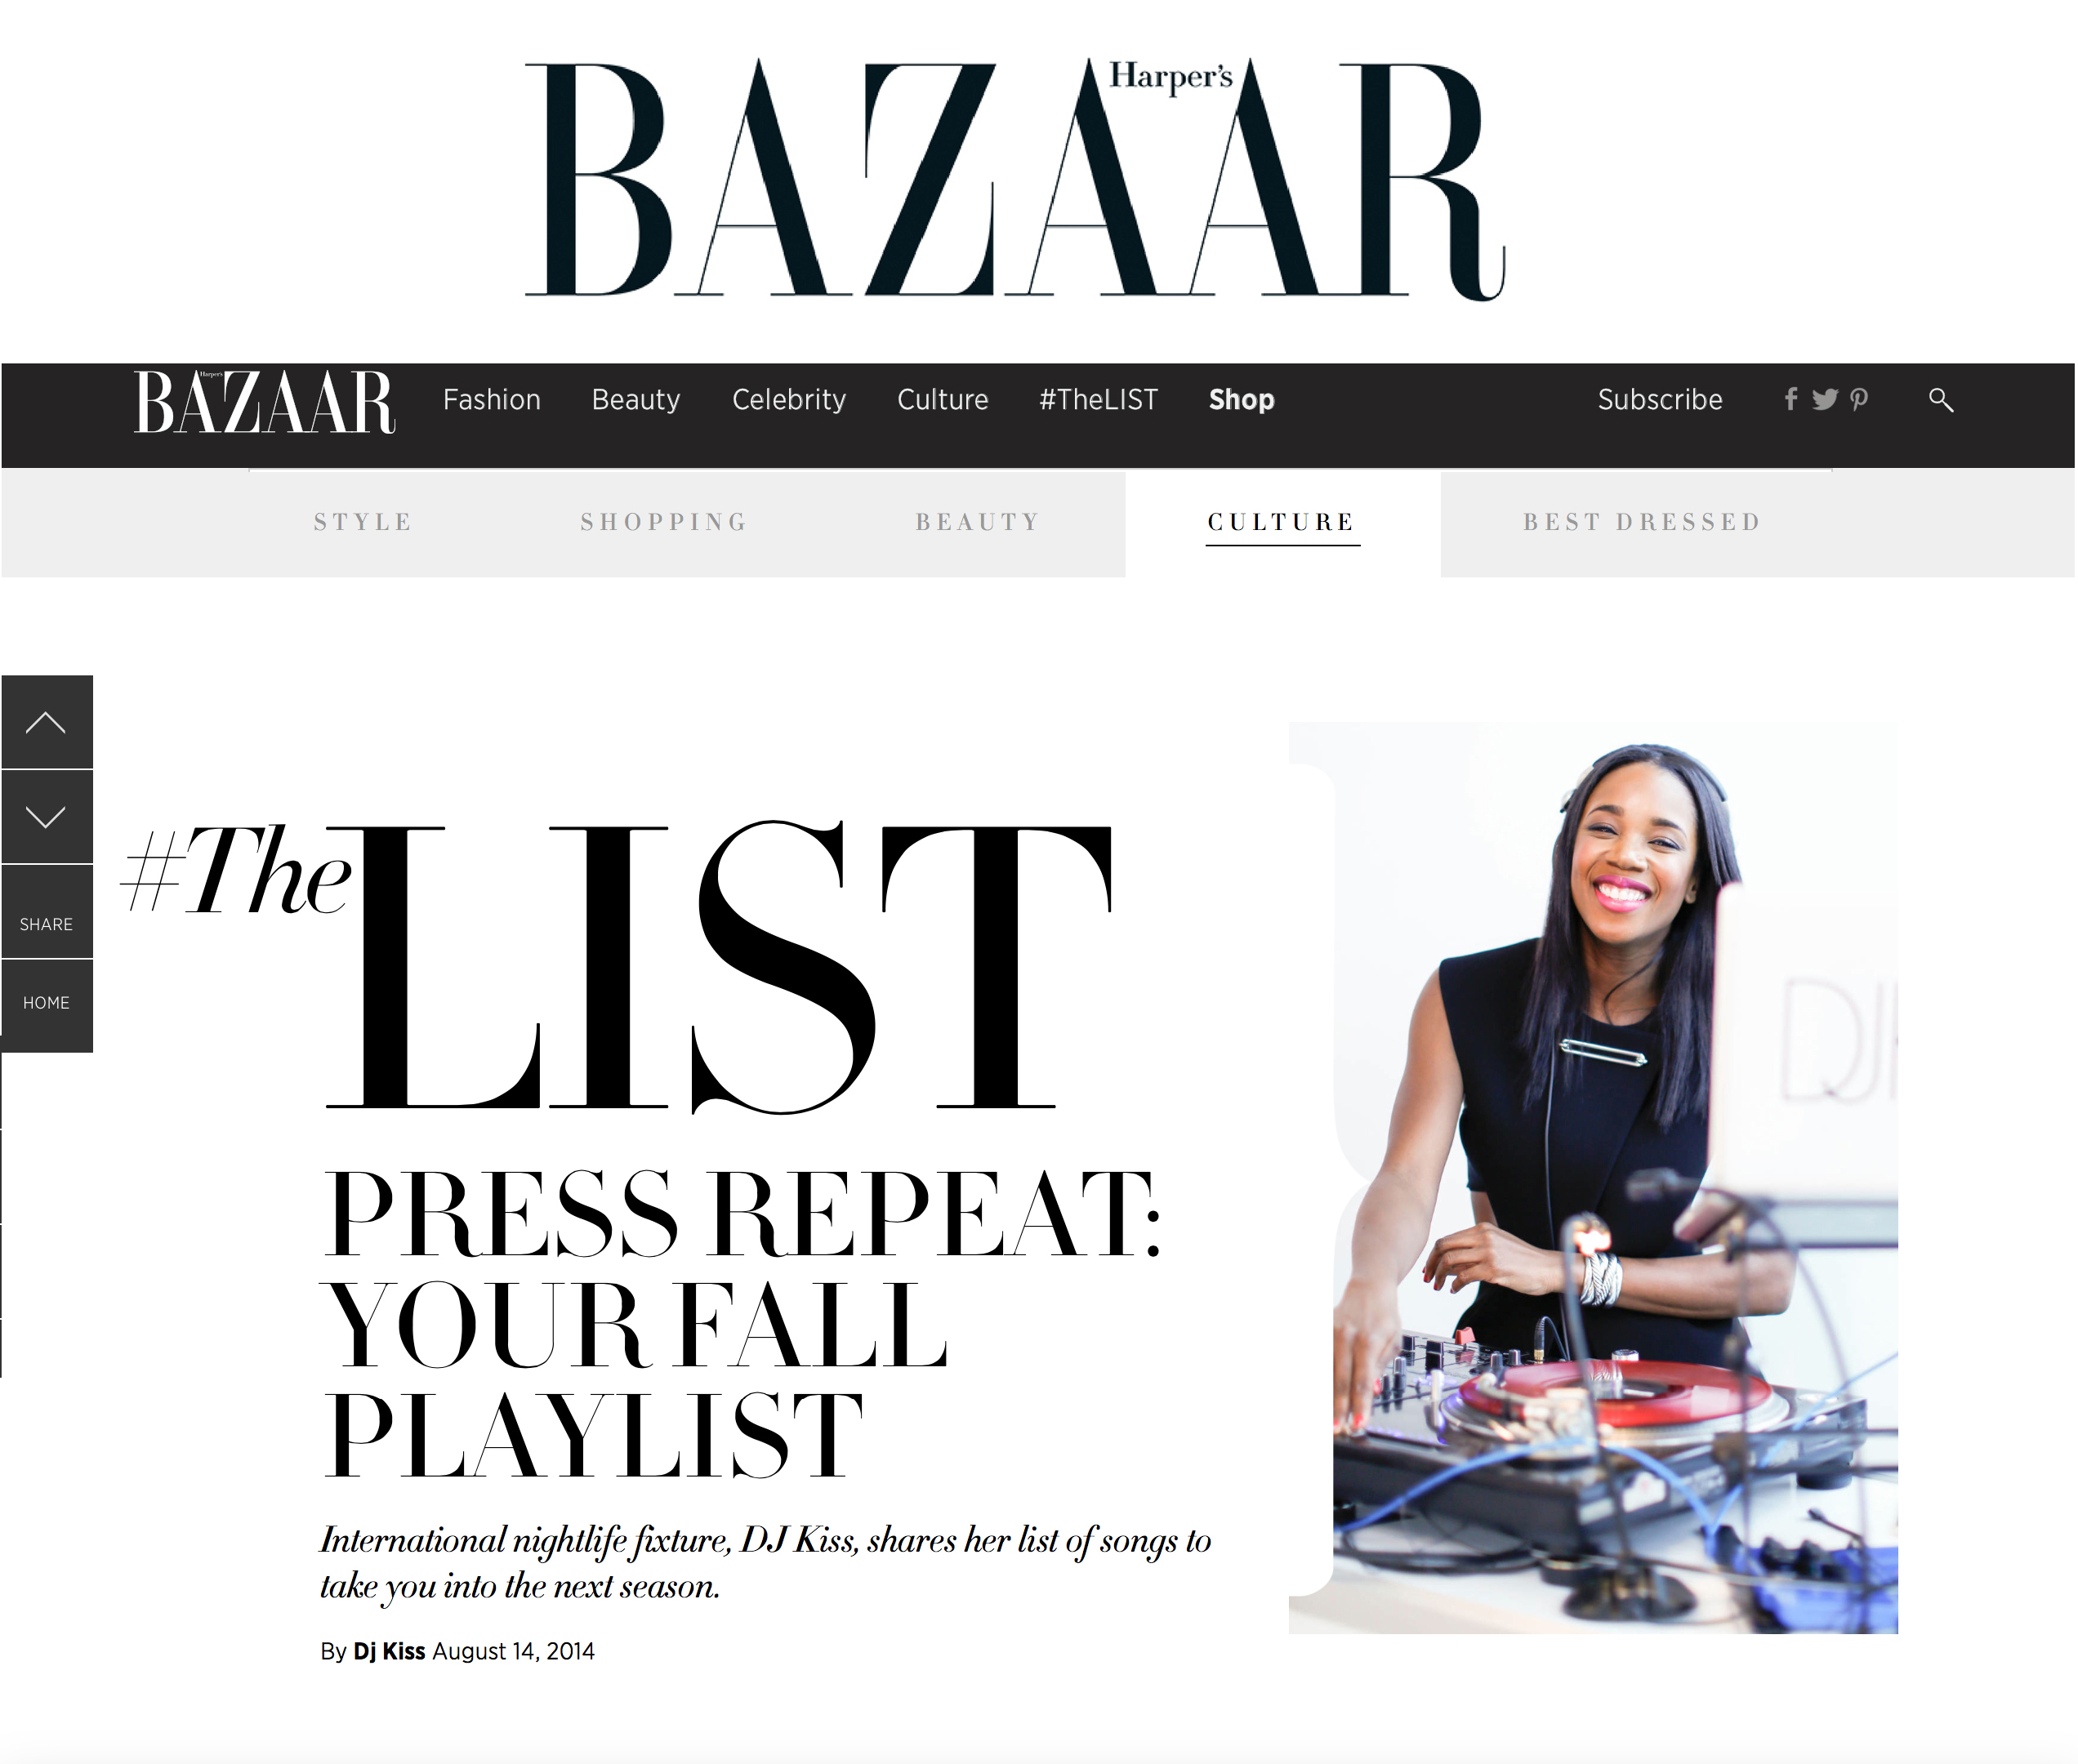 Harper's Bazaar - Fall 2014 playlist